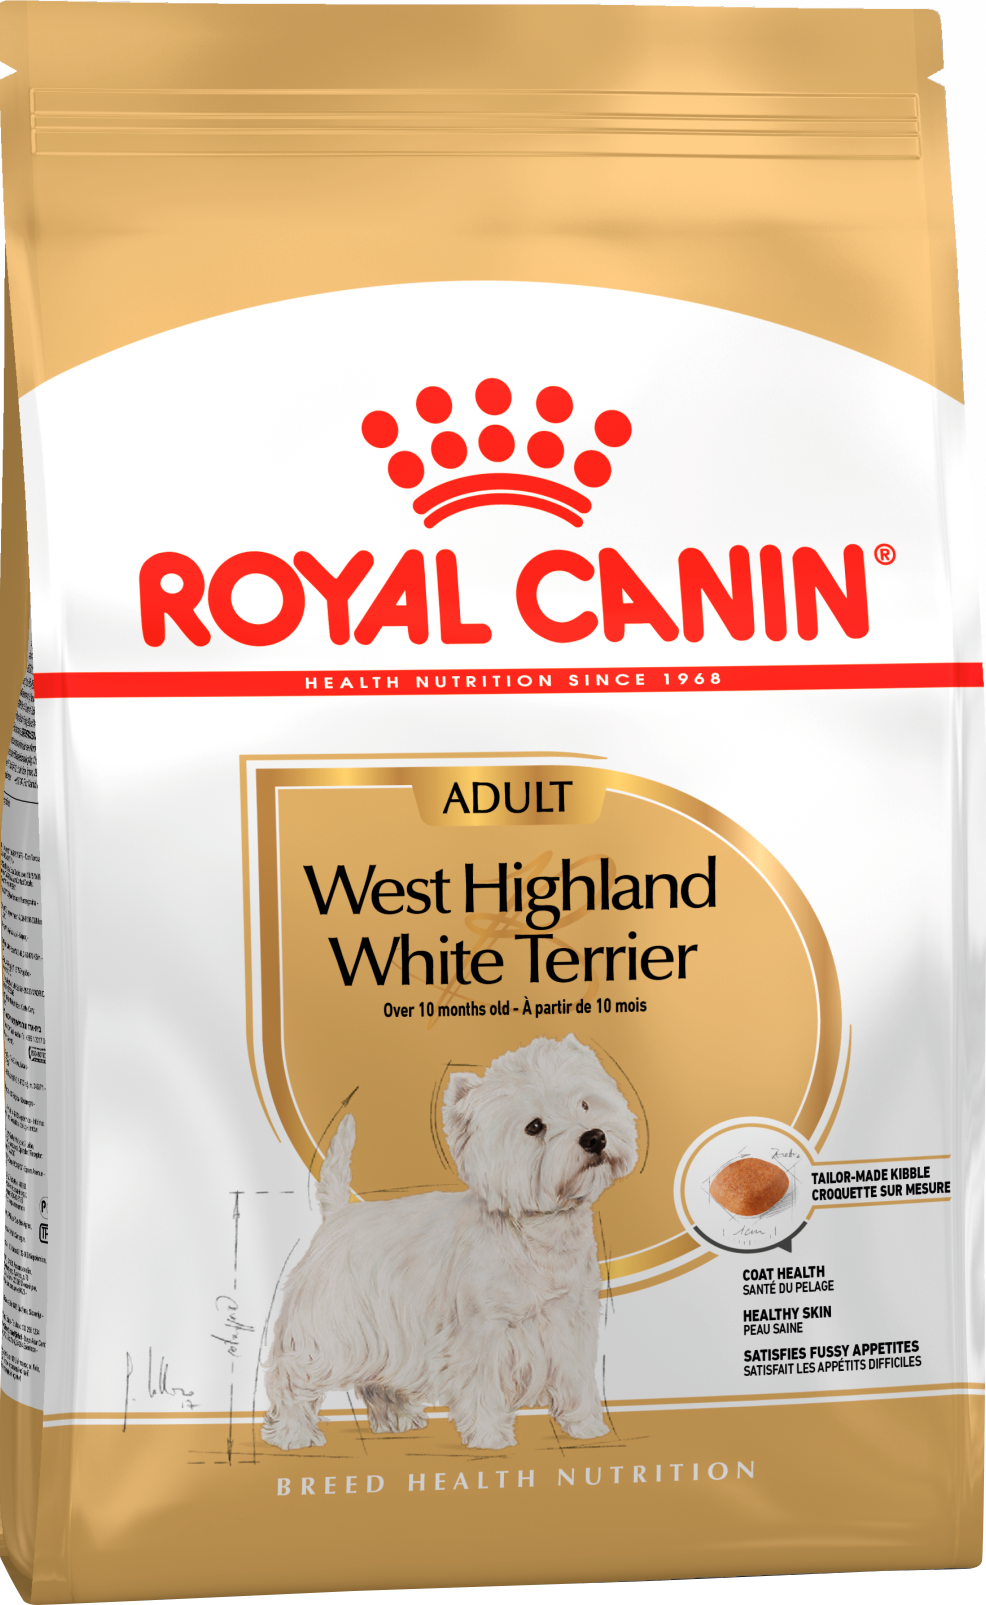 Royal Canin Корм для собак породы Вест хайленд вайт терьер, Royal Canin Westie Adult 172015.png